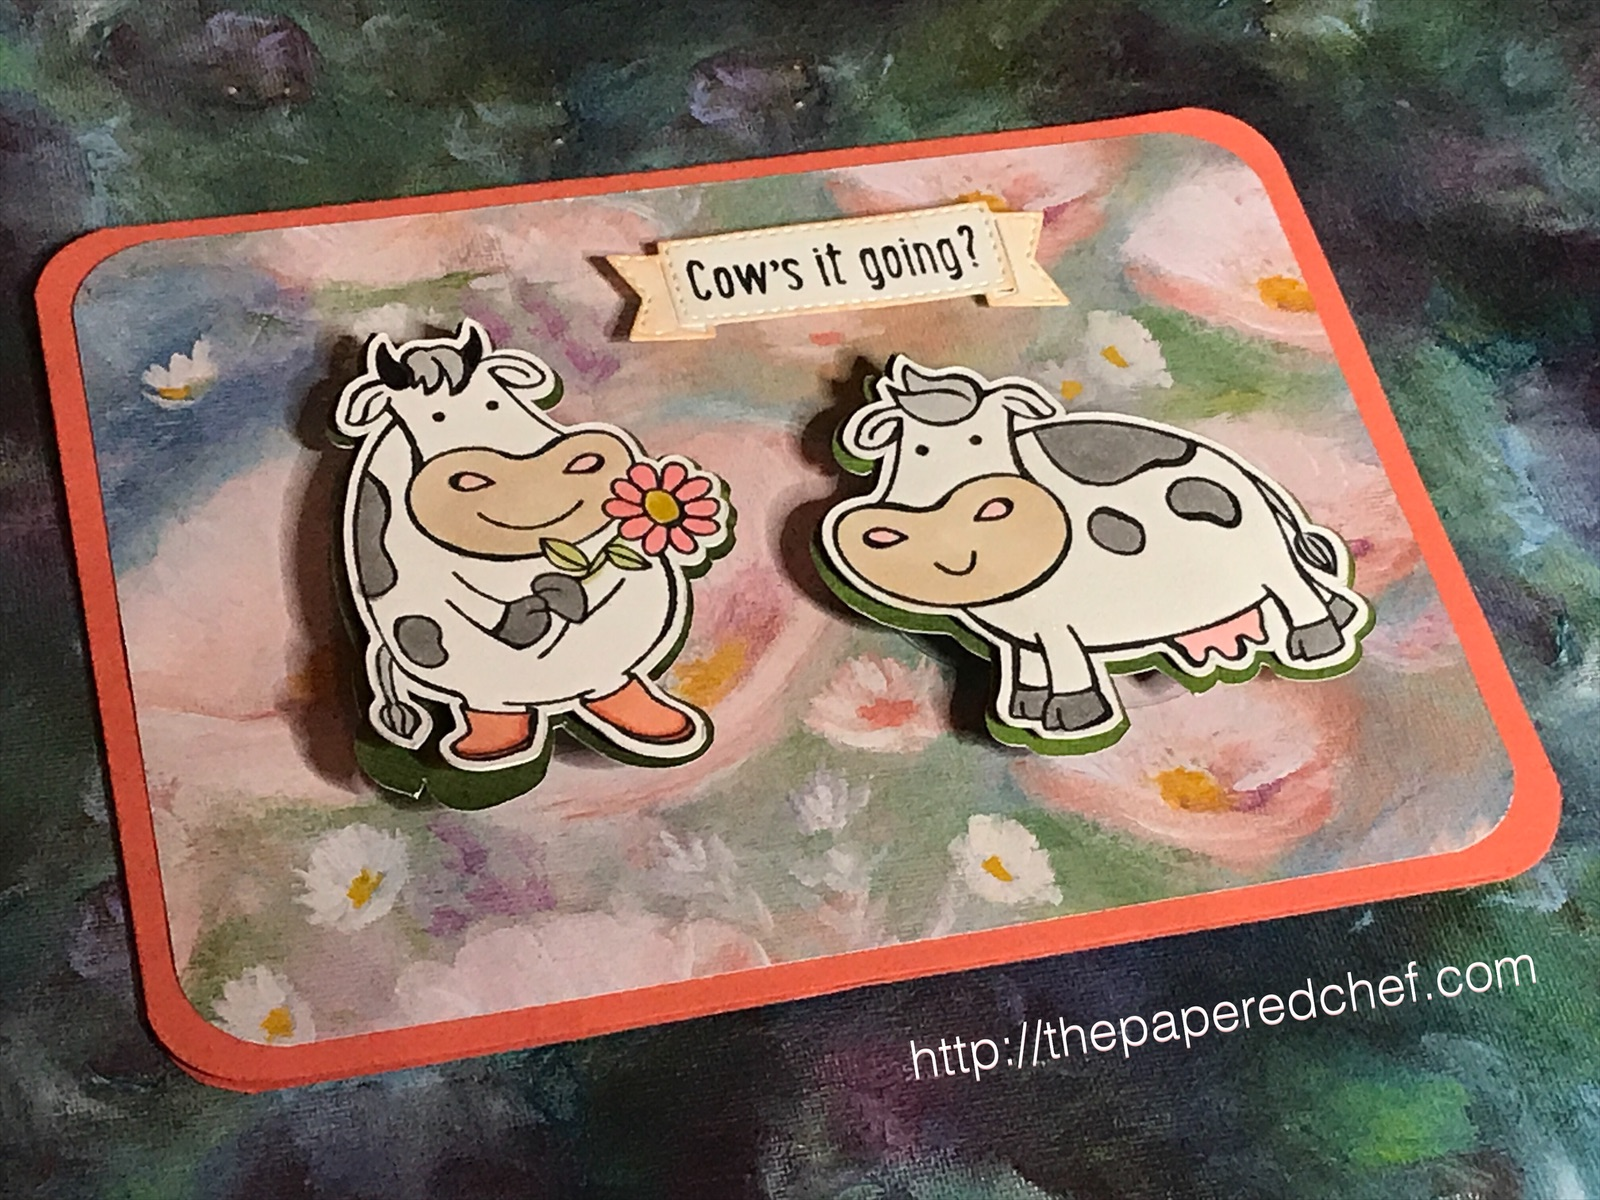 Over the Moon - Stampin' Up! Cow's It Going Card